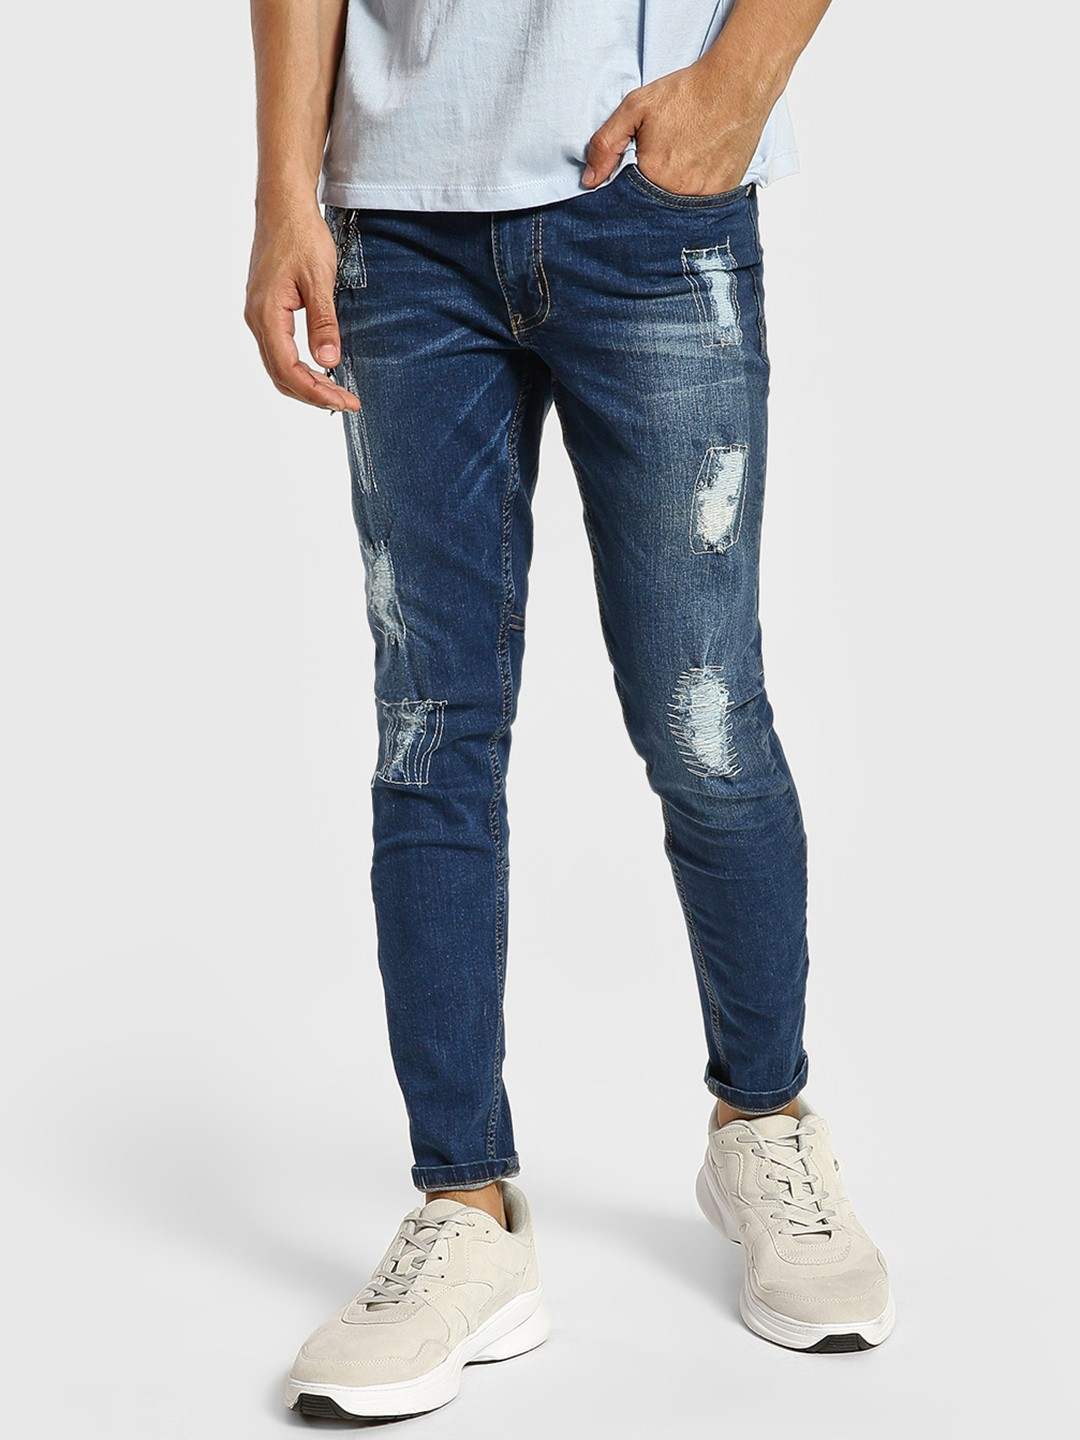 IMPACKT Blue Distressed Light Wash Skinny Jeans 1